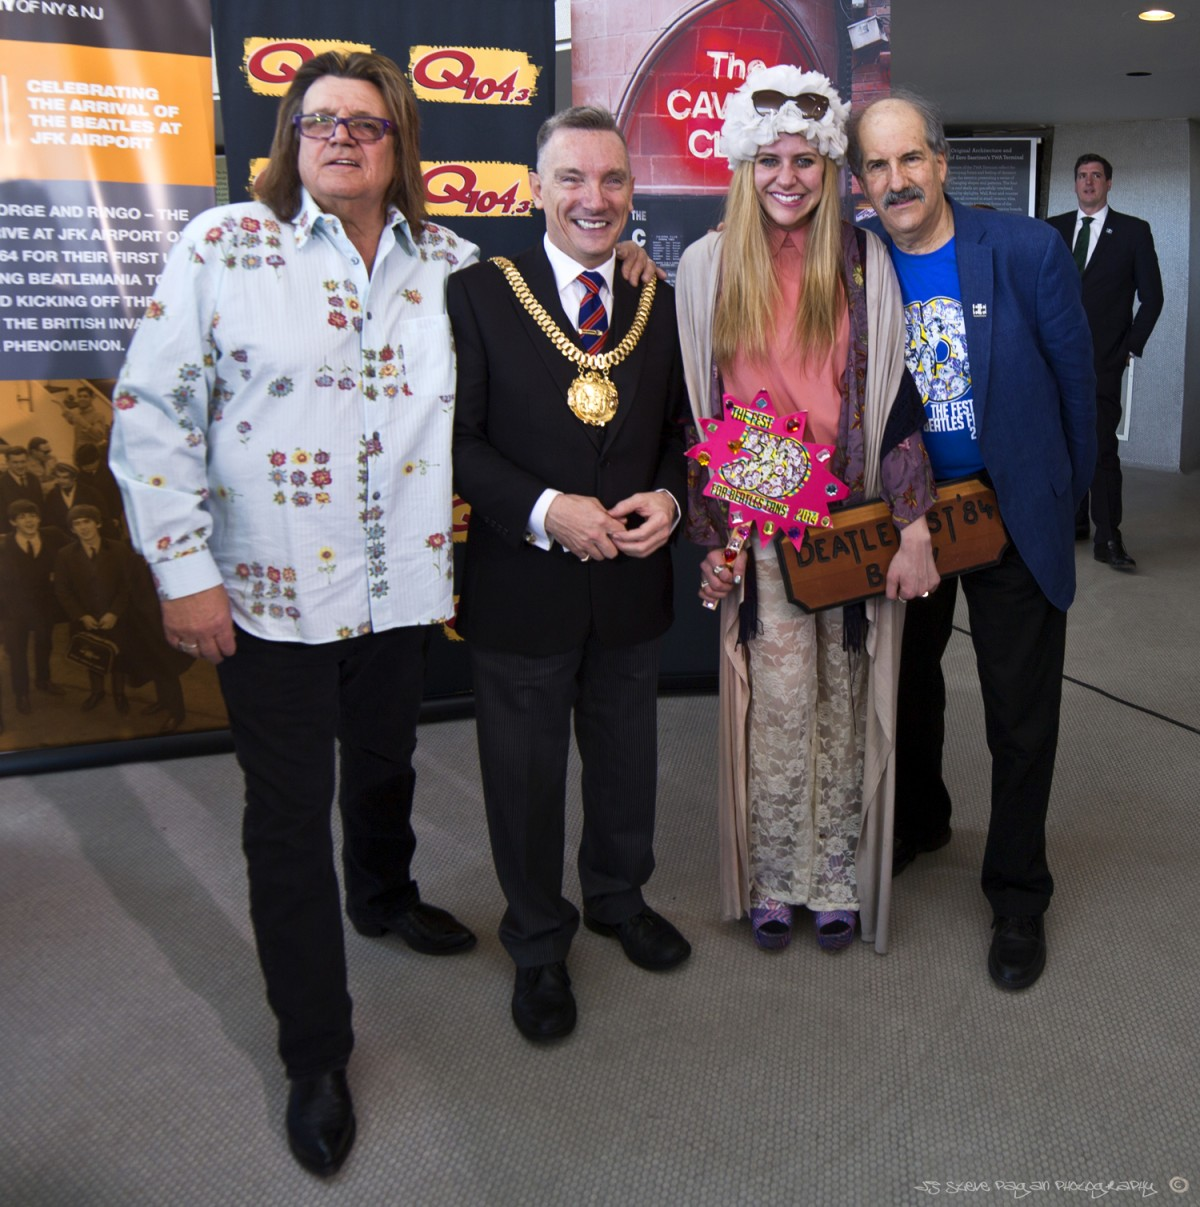 Billy J. Kramer, the Lord Mayor of Liverpool, Michelle Lapidos, and Mark Lapidos pose for a shot during the JFK Airport trip.